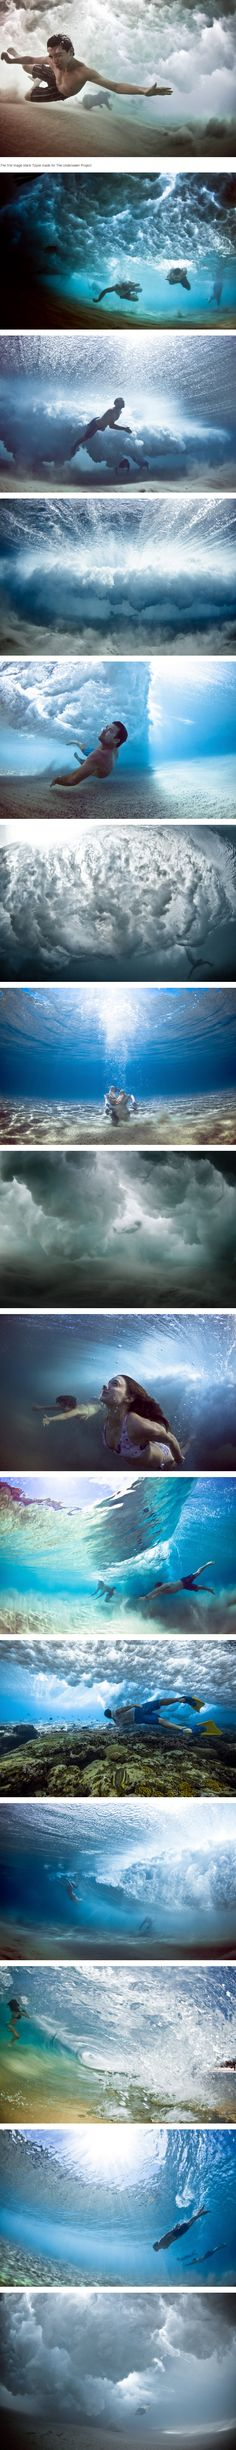 "A strip of images from Mark Tipple's renown ""The Underwater Project"" (WInter 2010 - Summer 2012) http://shorty.3rdlof.com/g3dup  A video is available:  http://shorty.3rdlof.com/ed9my"